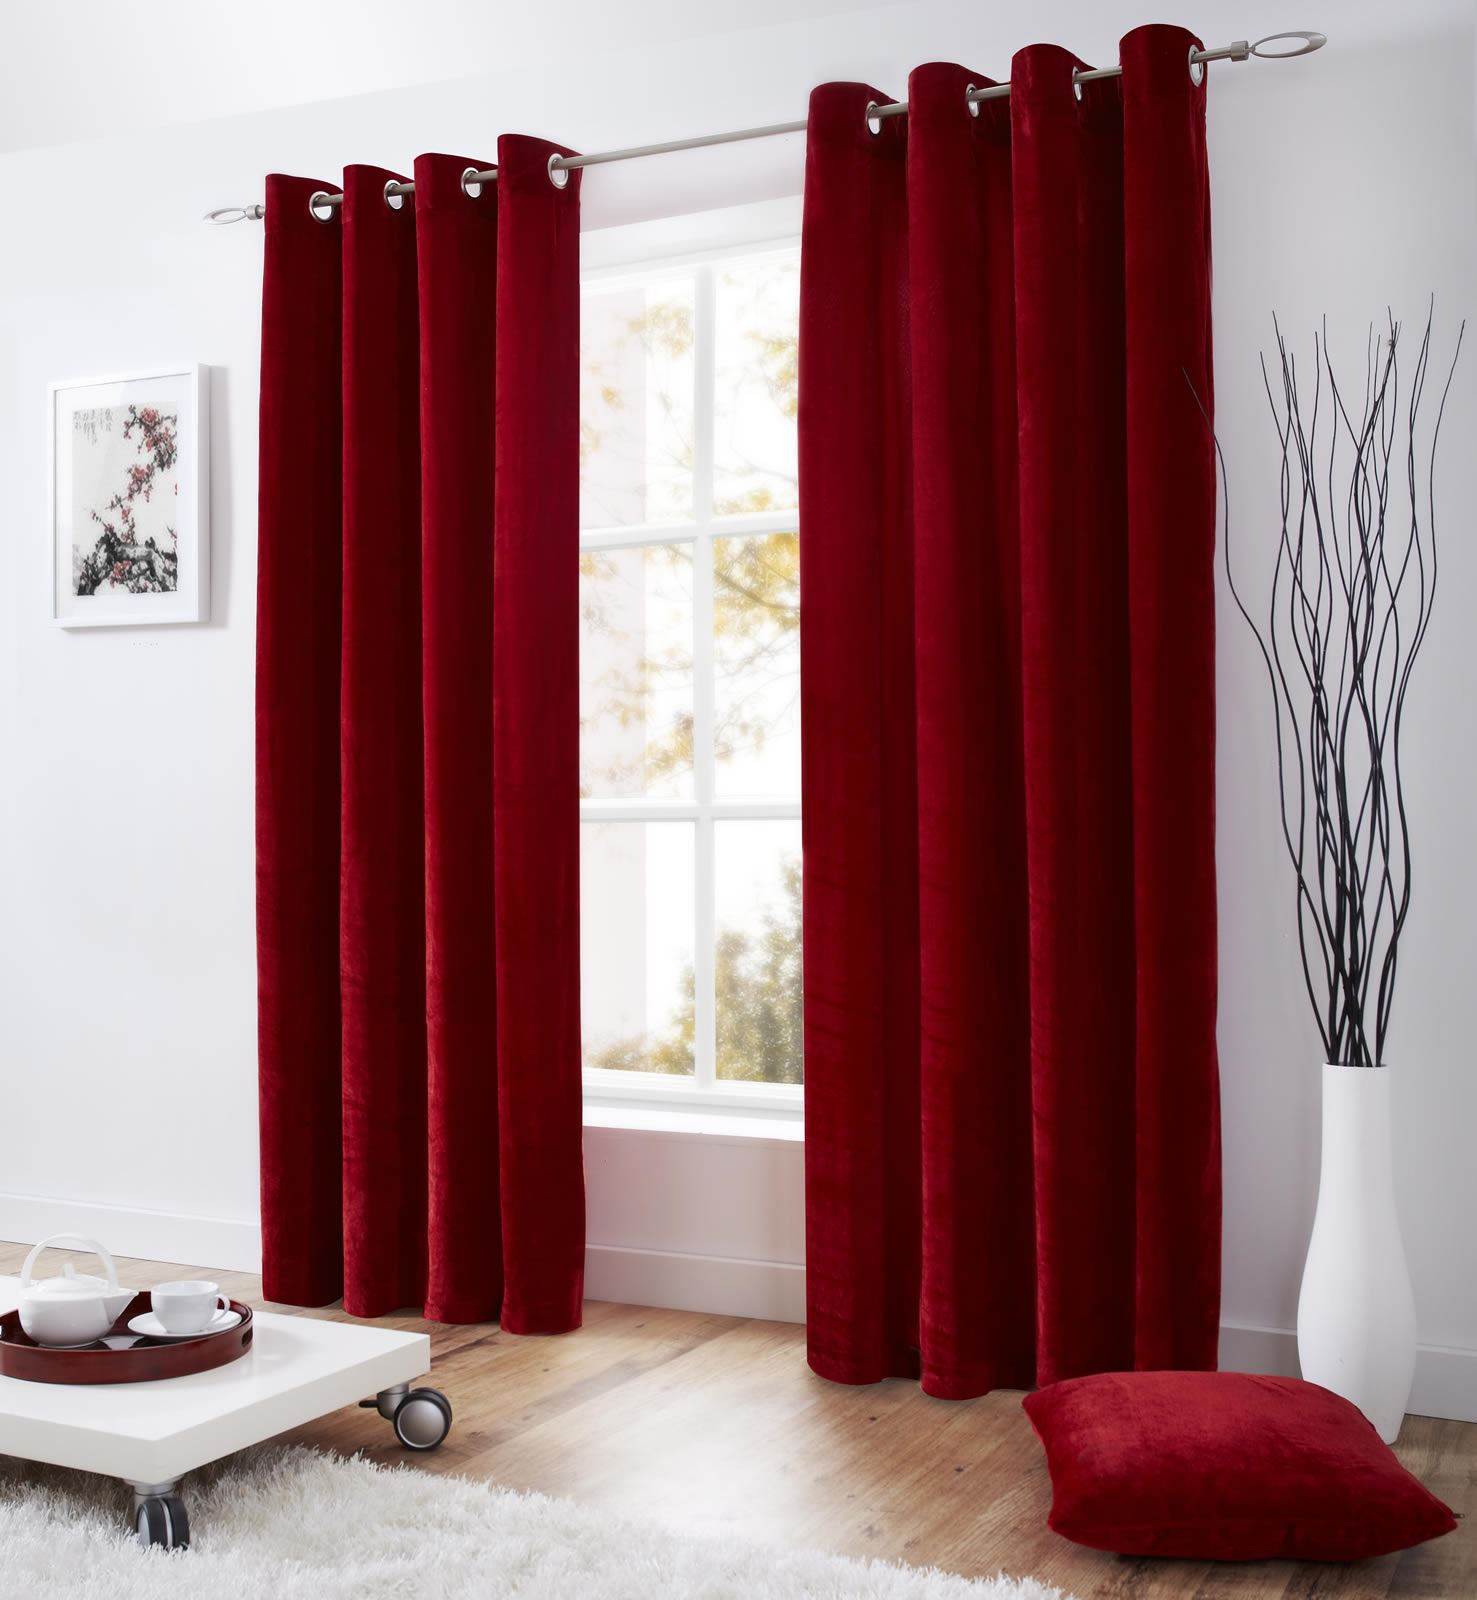 Side Door Window Curtains Open Red Velvet Curtains